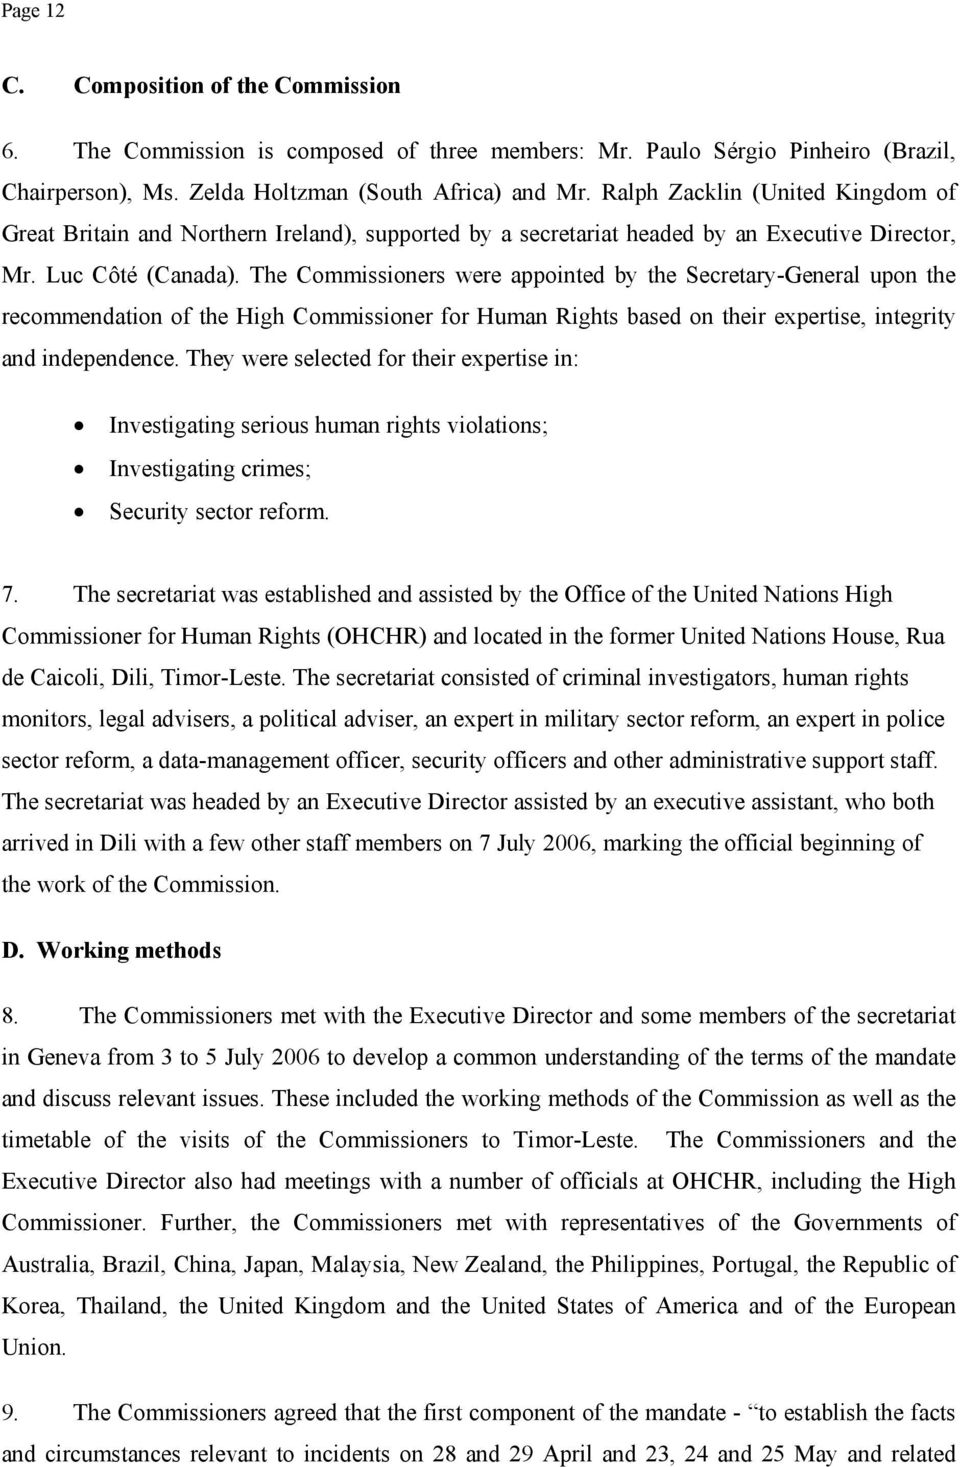 The Commissioners were appointed by the Secretary-General upon the recommendation of the High Commissioner for Human Rights based on their expertise, integrity and independence.